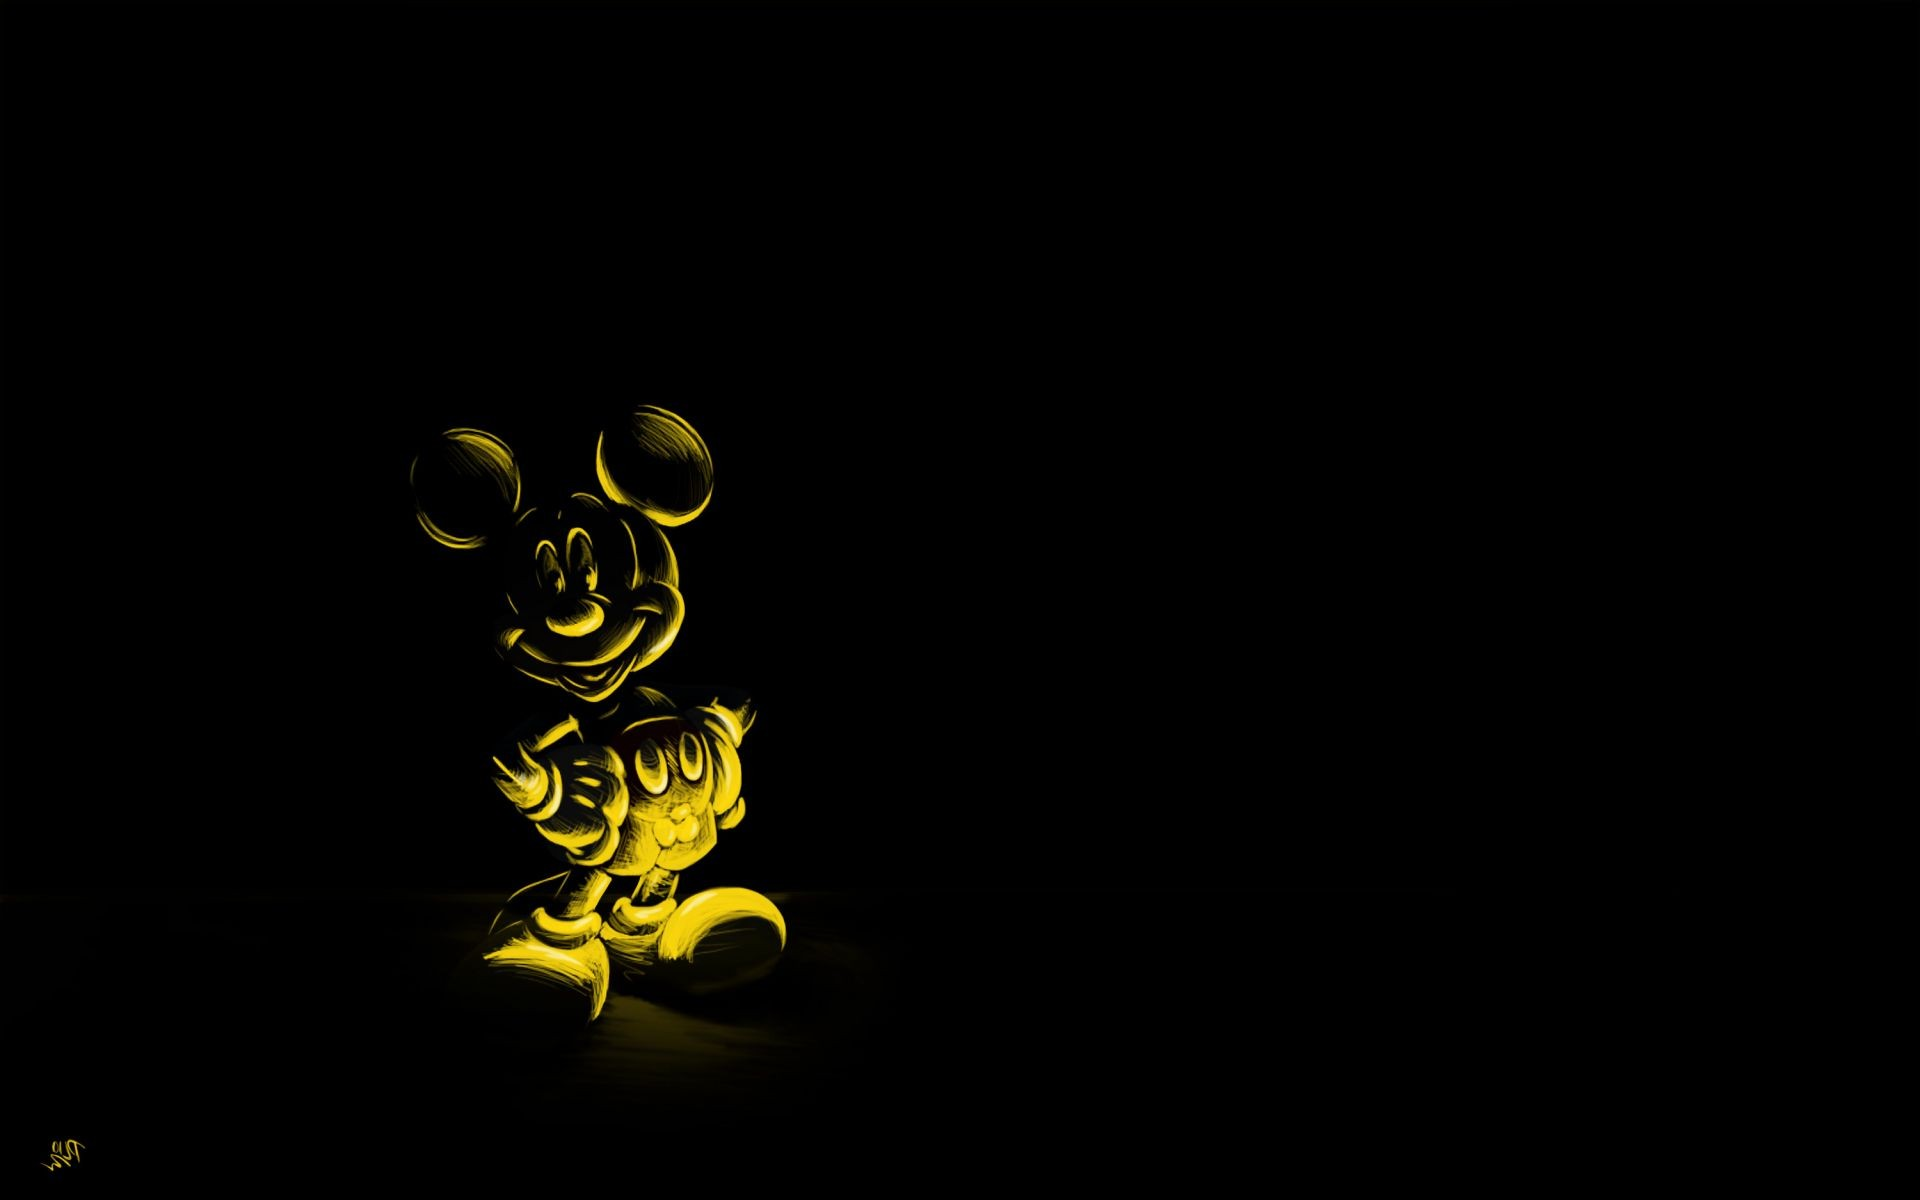 mouse Black background character Mickey mouse cartoon